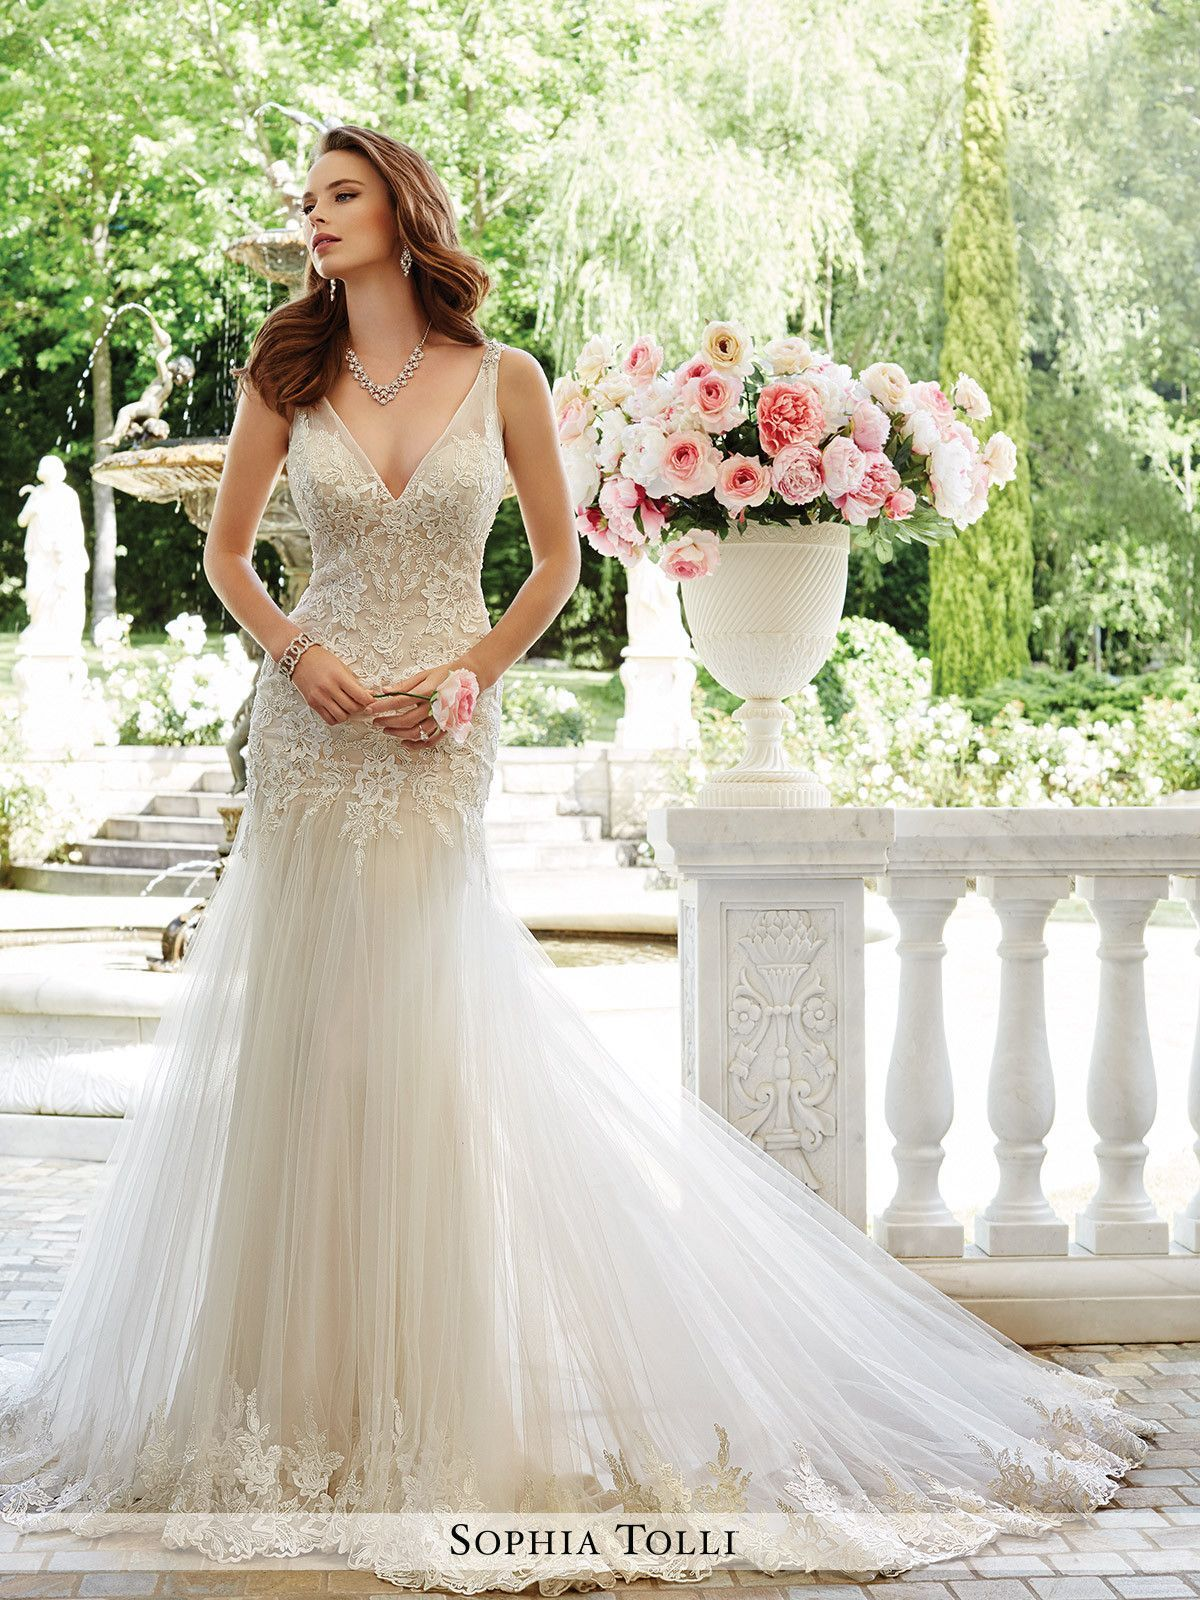 Sophia Tolli Rome Y21665 All Dressed Up Bridal Gown Wedding Dresses Sophia Tolli Wedding Dresses Wedding Gown Gallery